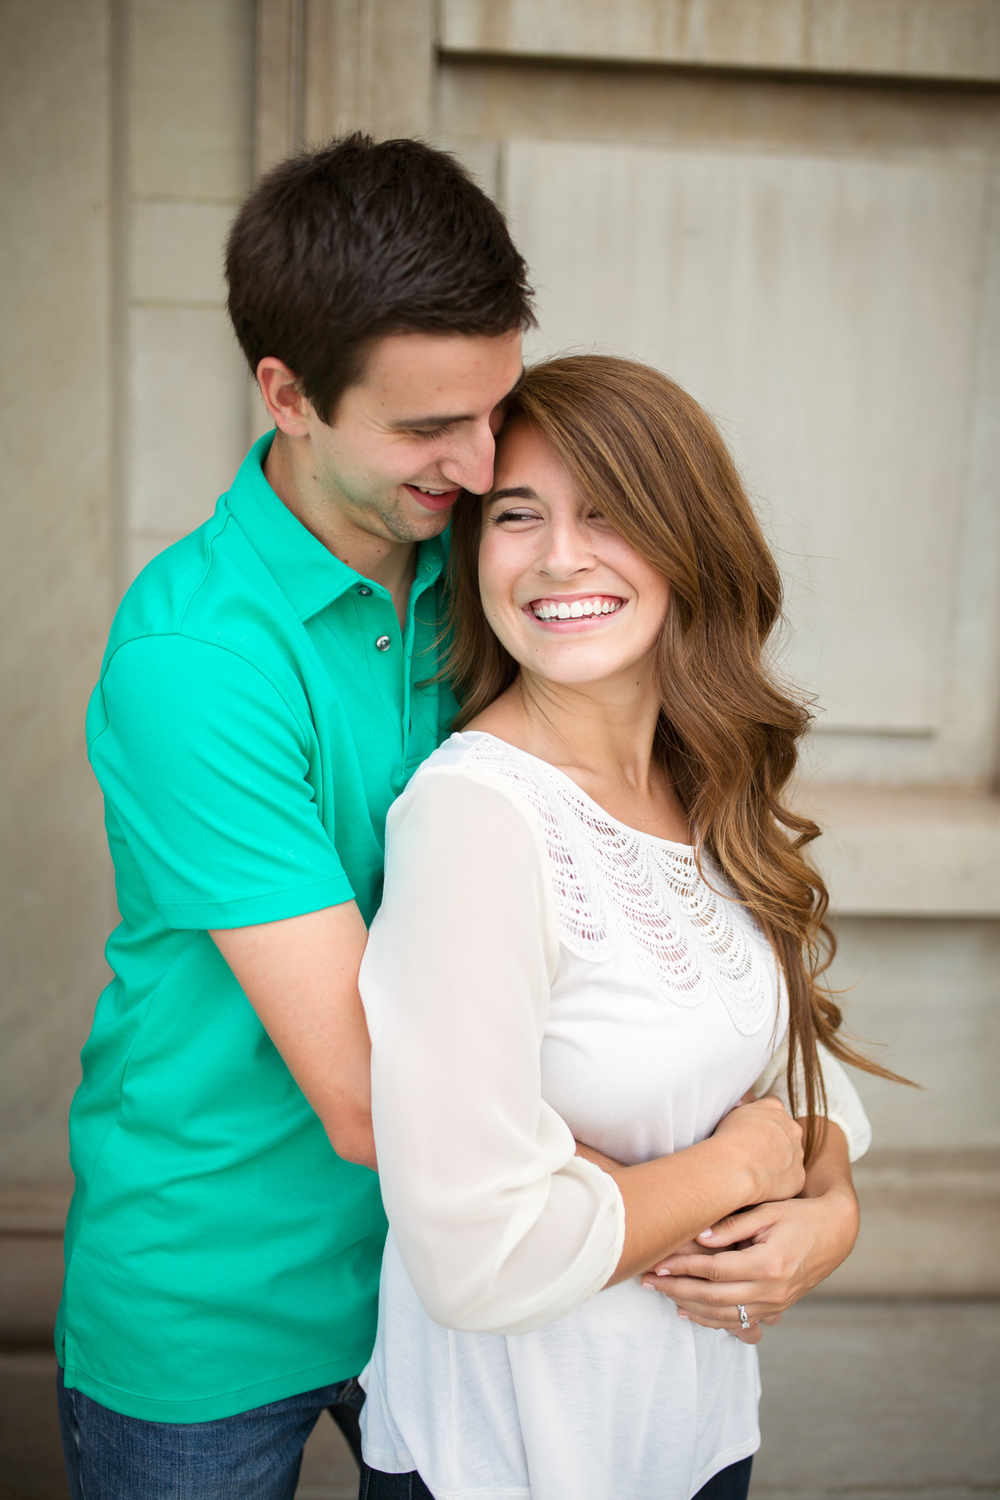 Rockhill-studio-marquette-michigan-upper-peninsula-engagement-session-library3.jpg